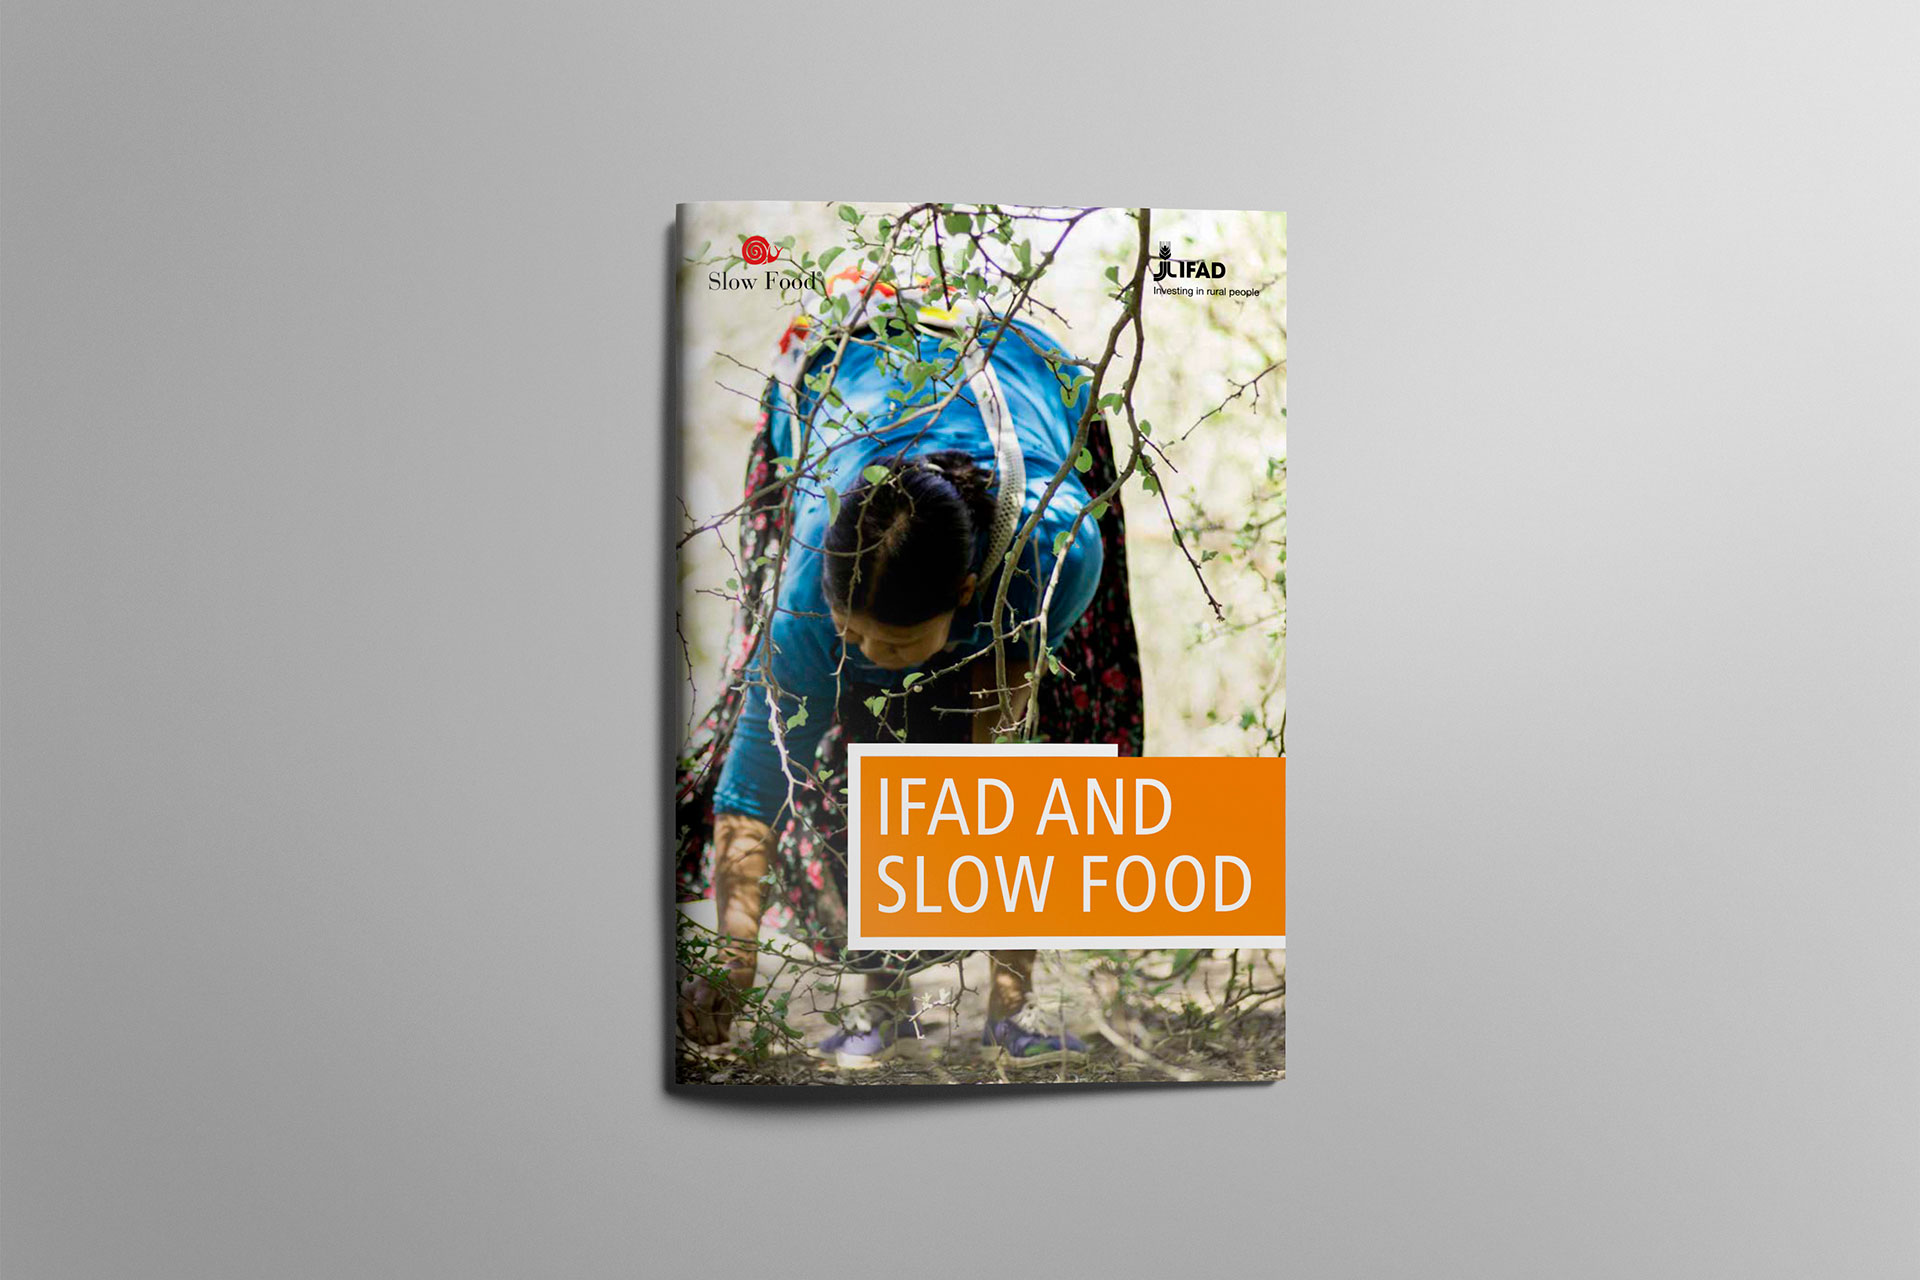 Ifad and Slow Food Booklet